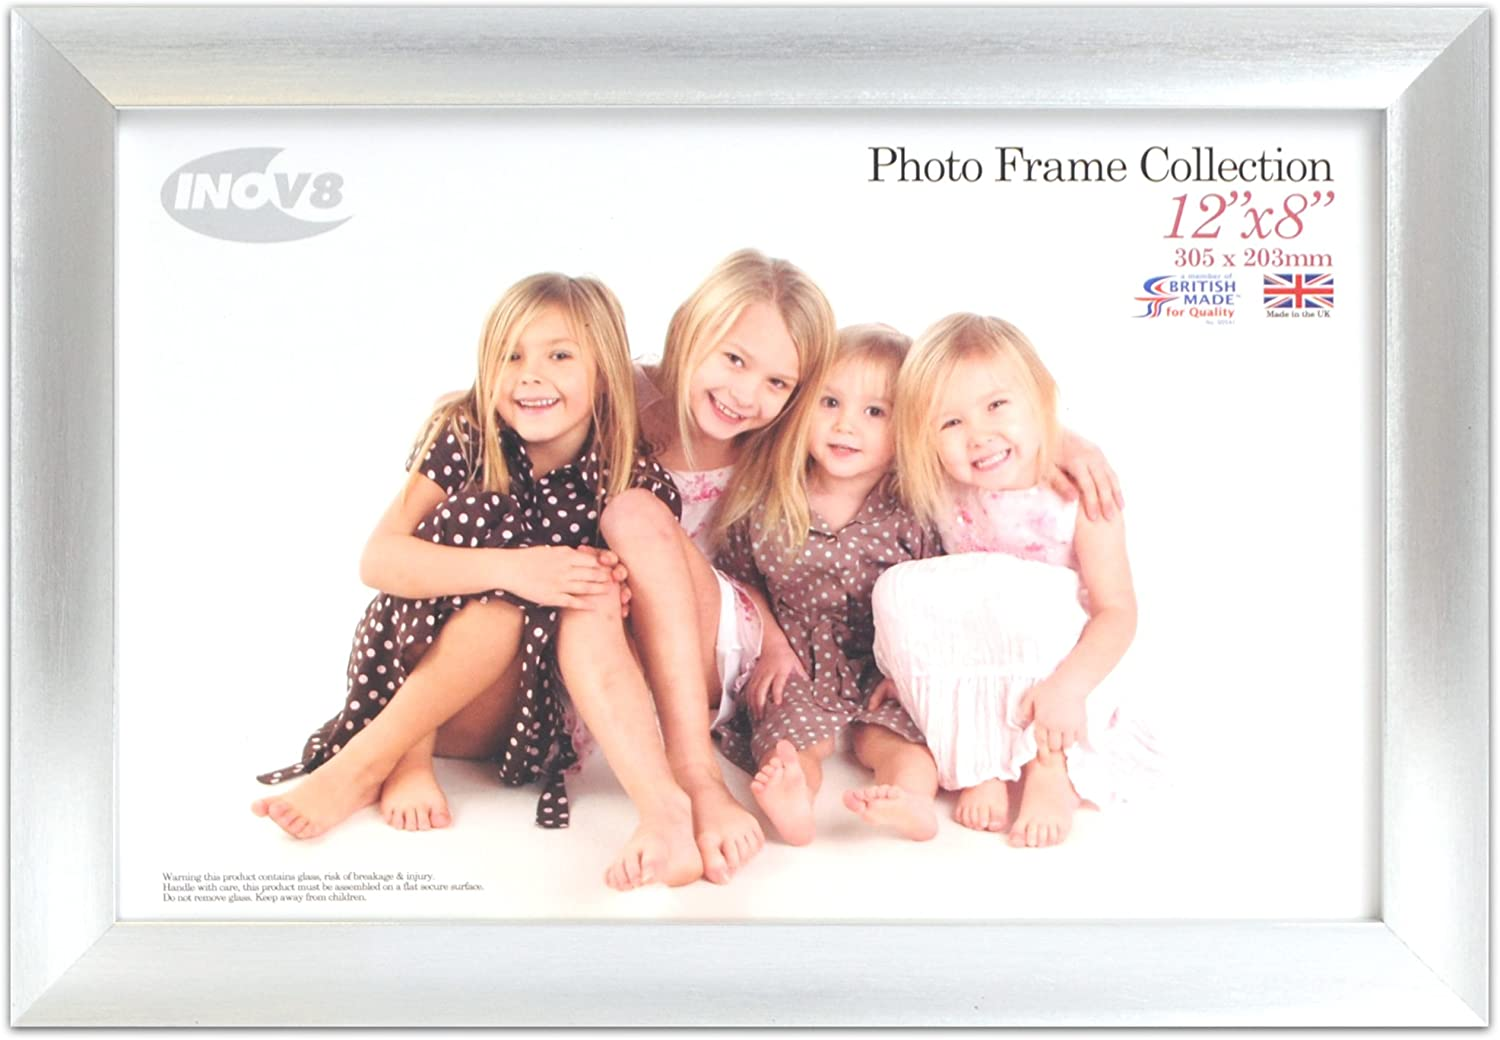 Inov8 British Made Traditional Picture Photo Frame, 12x8-inch, Pack of 4, Scoop Silver